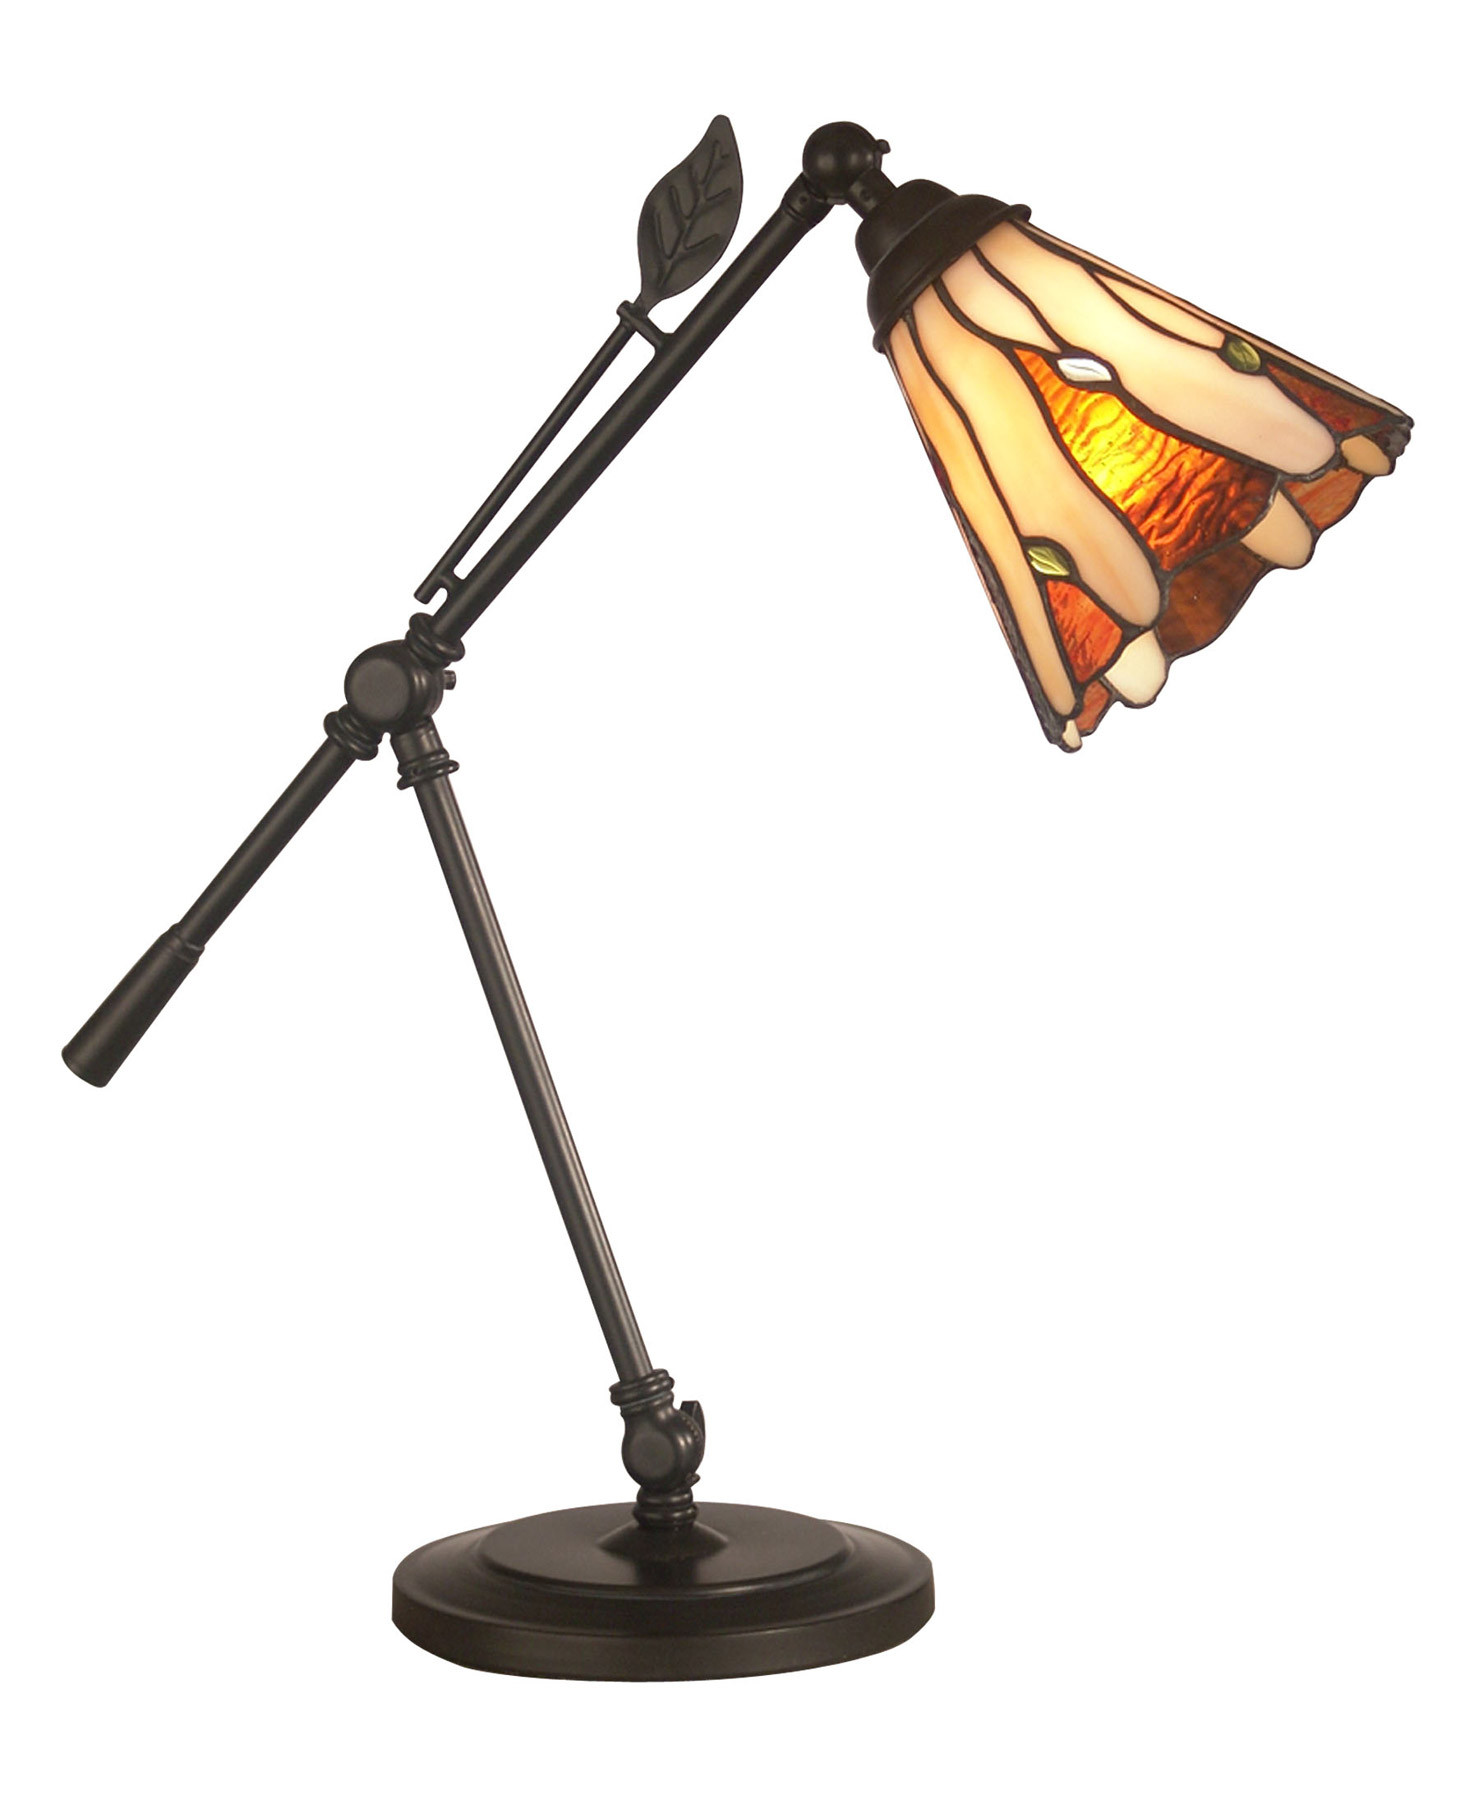 Best ideas about Tiffany Desk Lamp . Save or Pin Dale Tiffany TA Tiffany Leaf Desk Lamp Now.